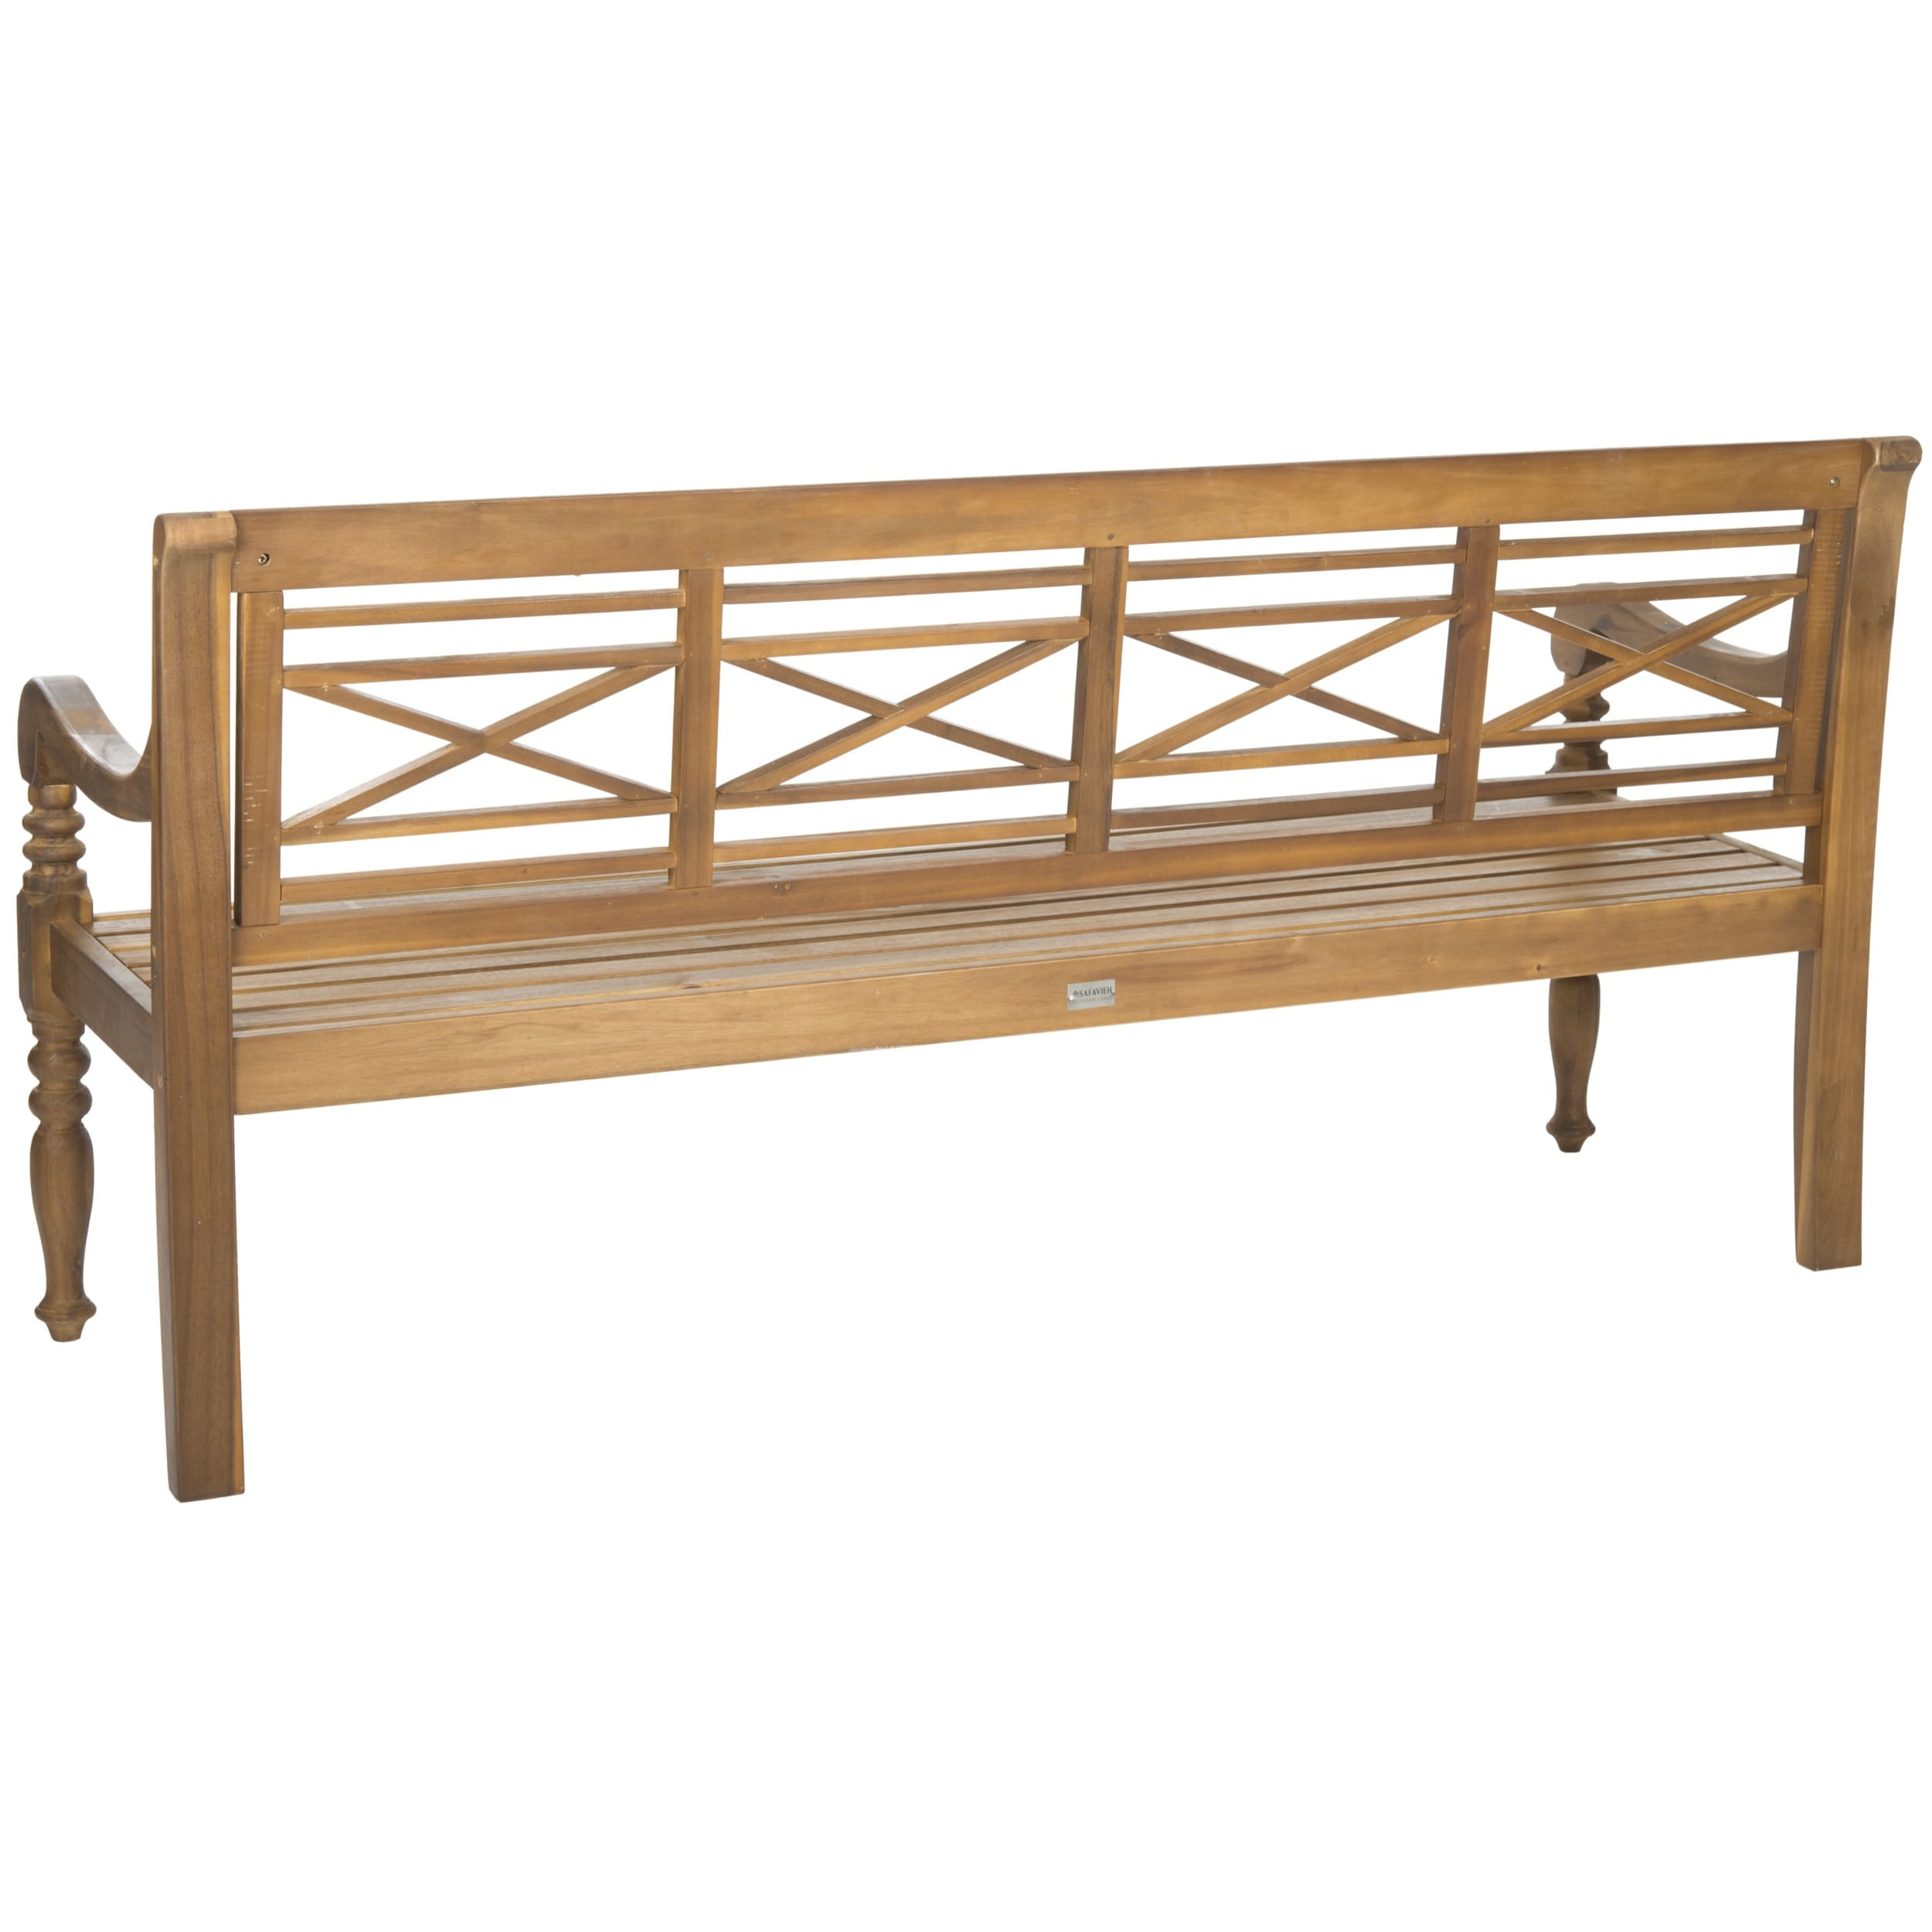 Elegant Wooden Benches for Outside